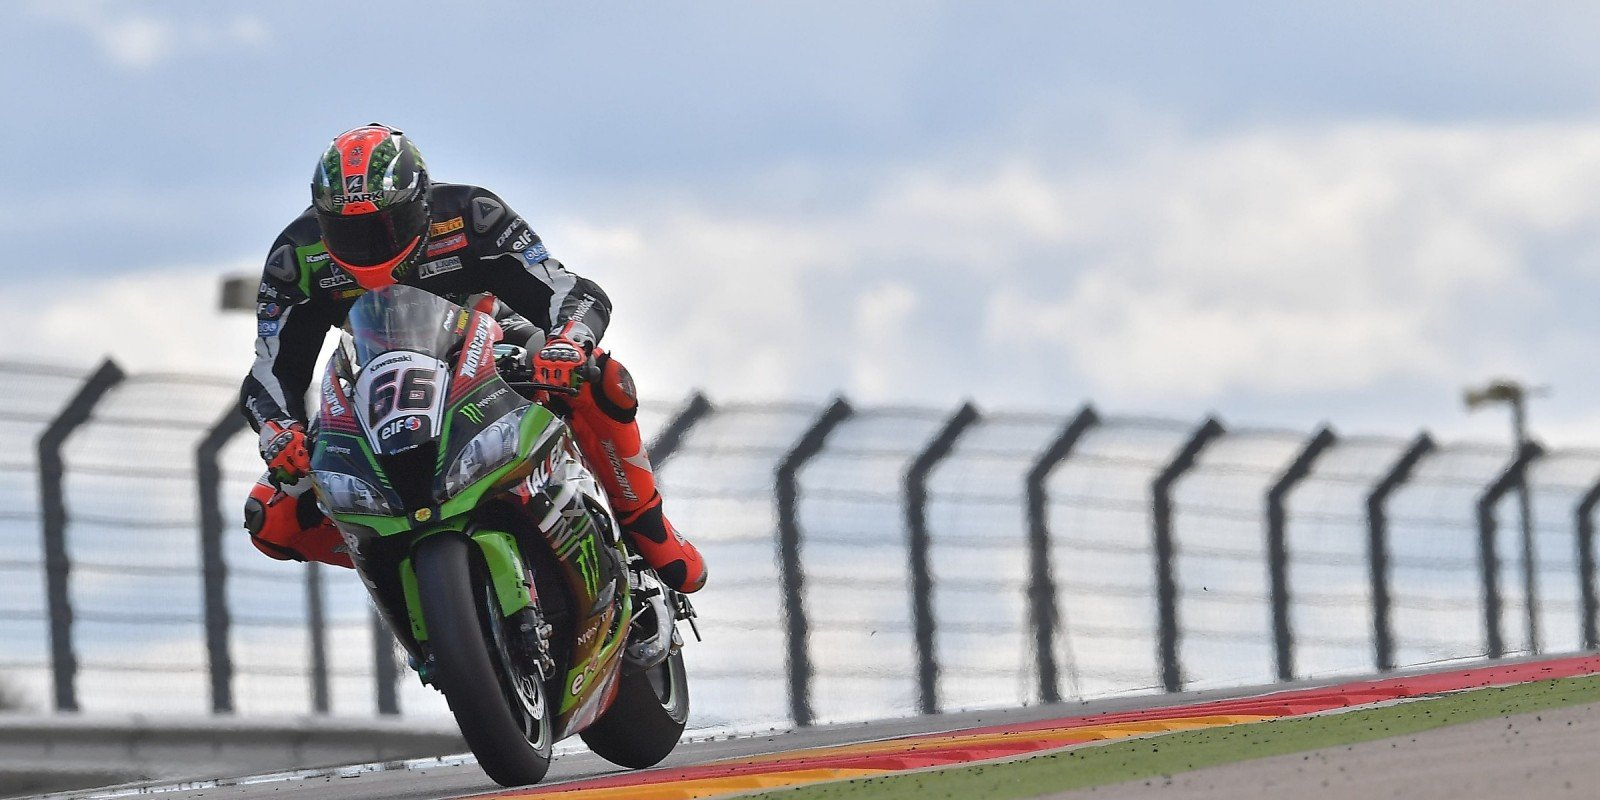 Tom Sykes at the 2017 World Superbike Pirelli Aragon Round